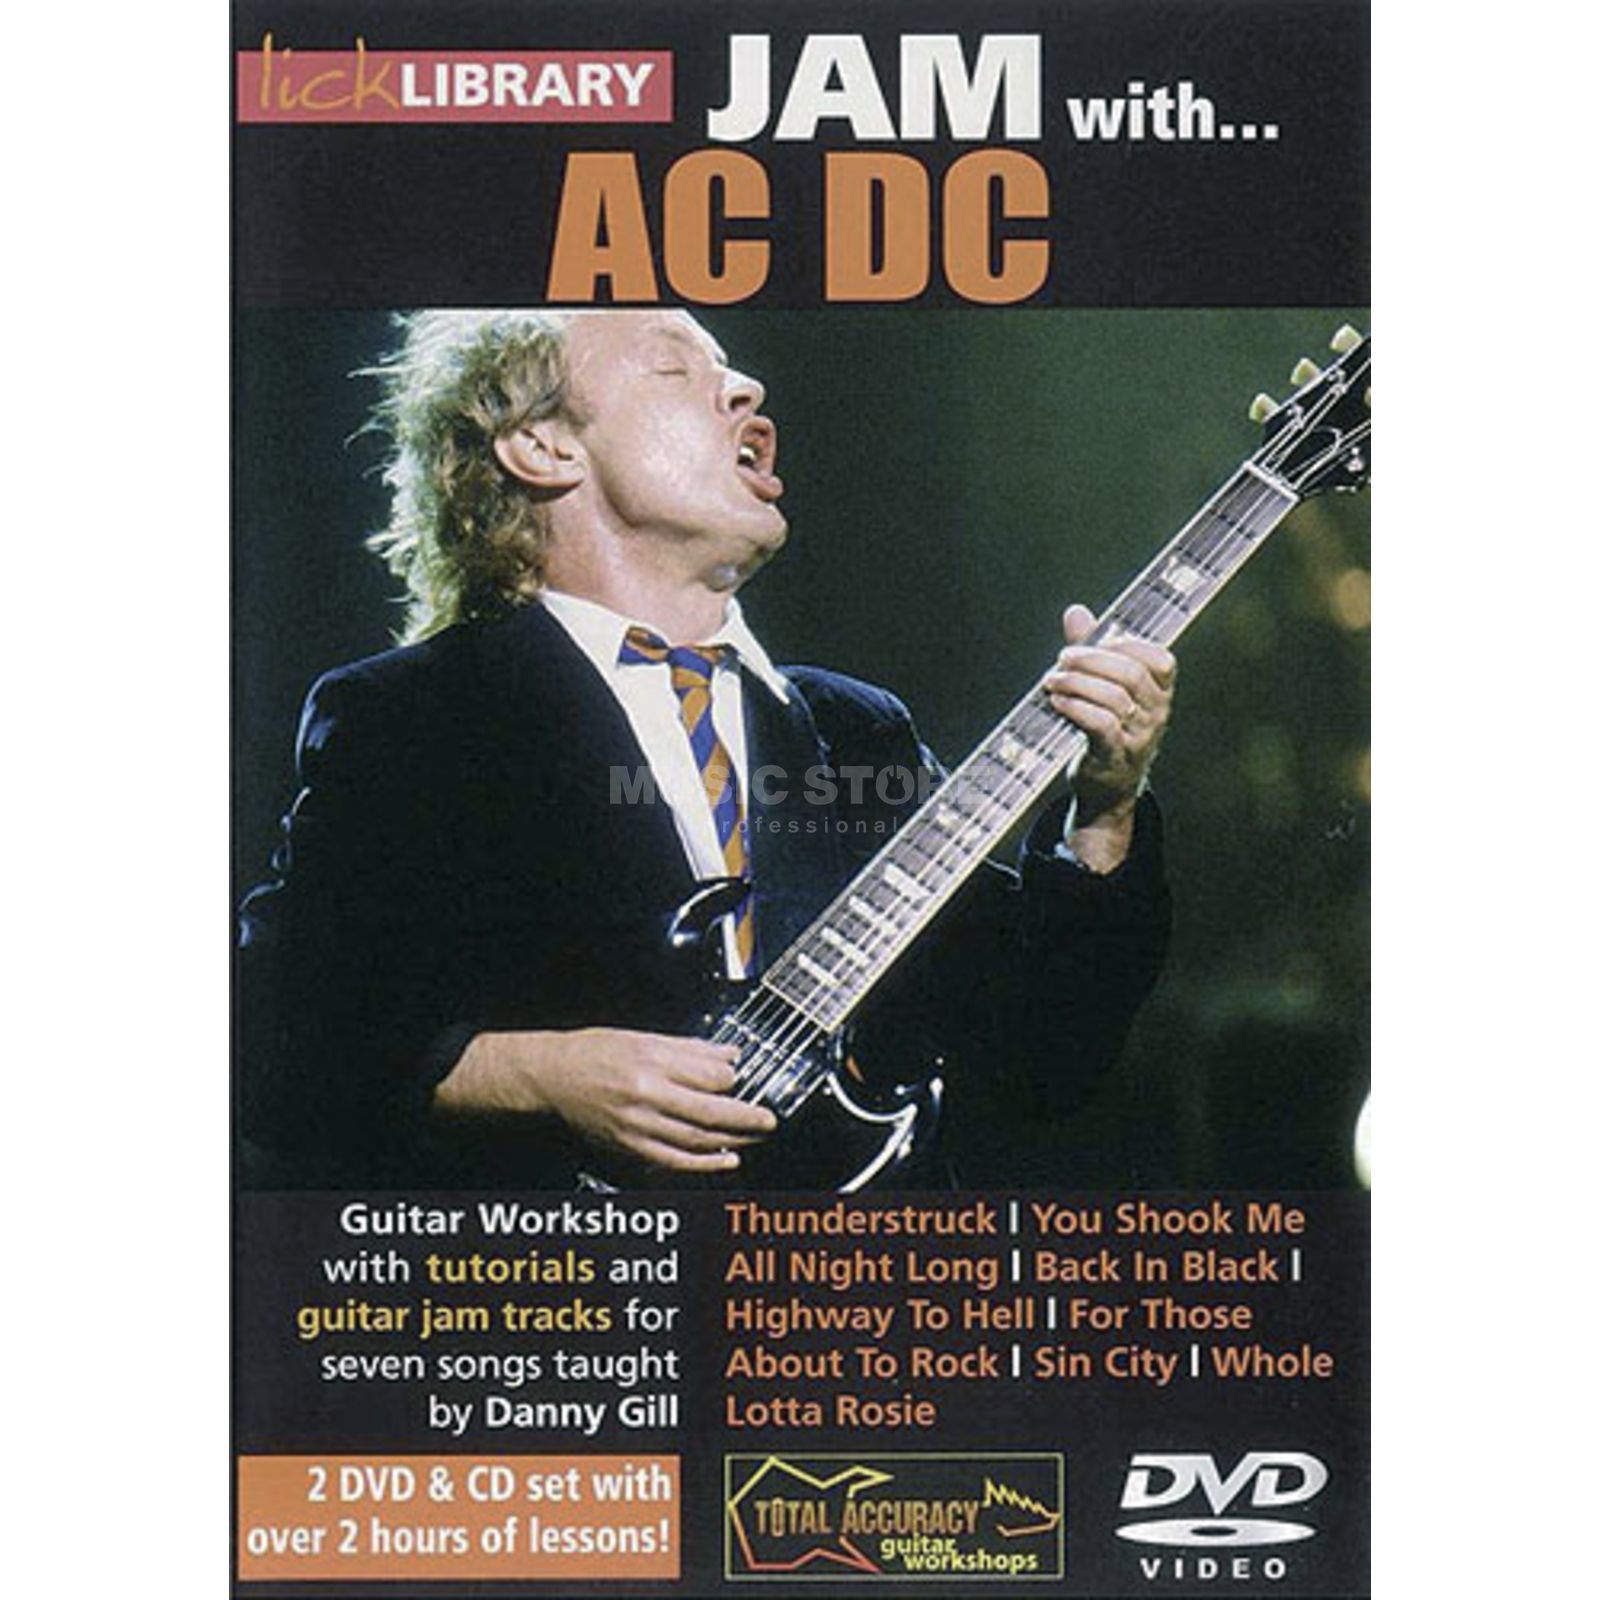 Roadrock International Lick Library: Jam With AC/DC DVD, CD Imagen del producto